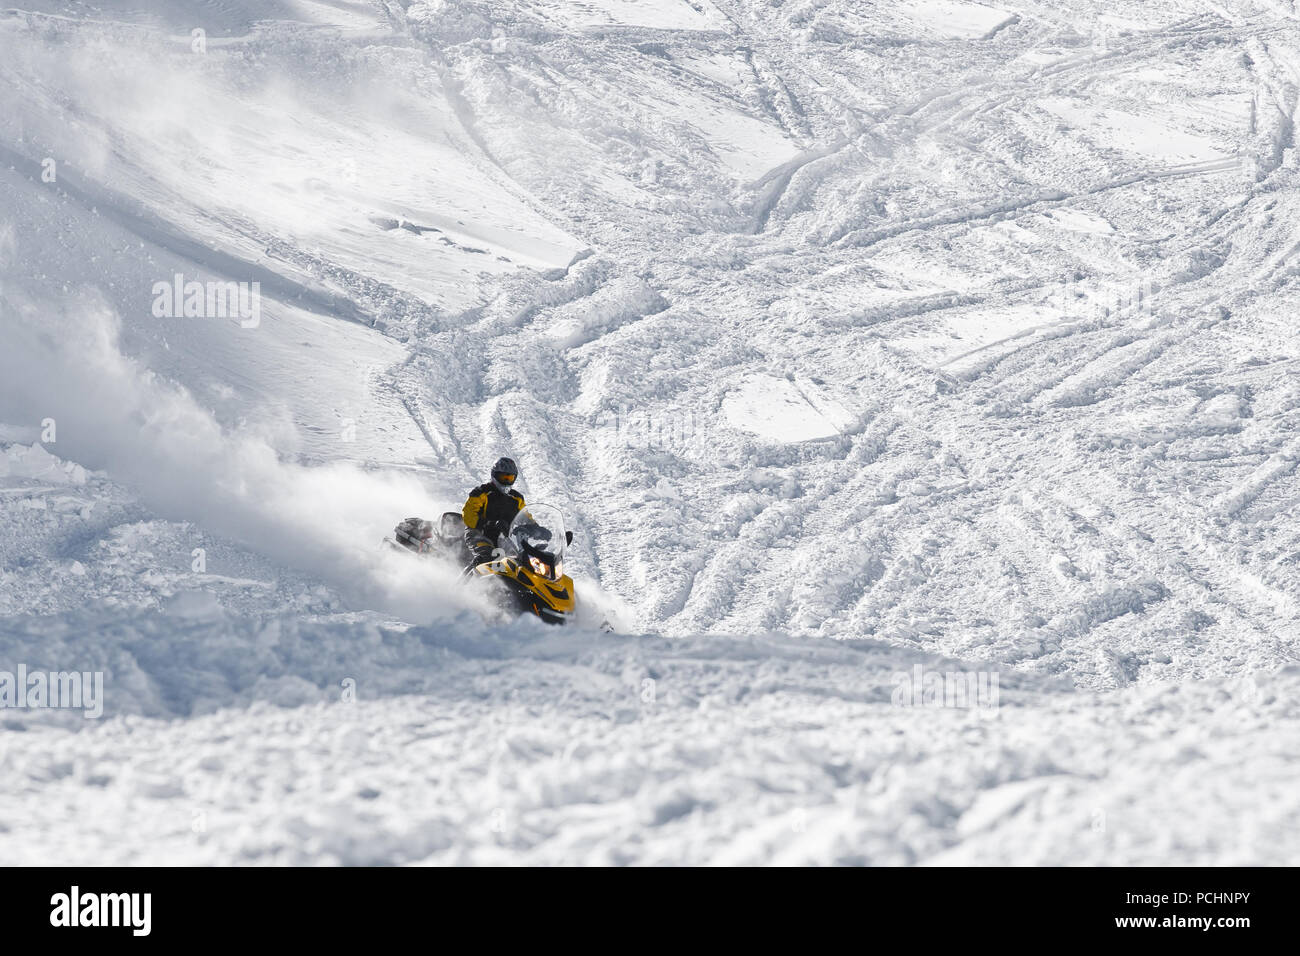 Racer snowmobile on a snowy mountainside. State Nature Reserve in Adygea, Russia, February 2, 2012. - Stock Image